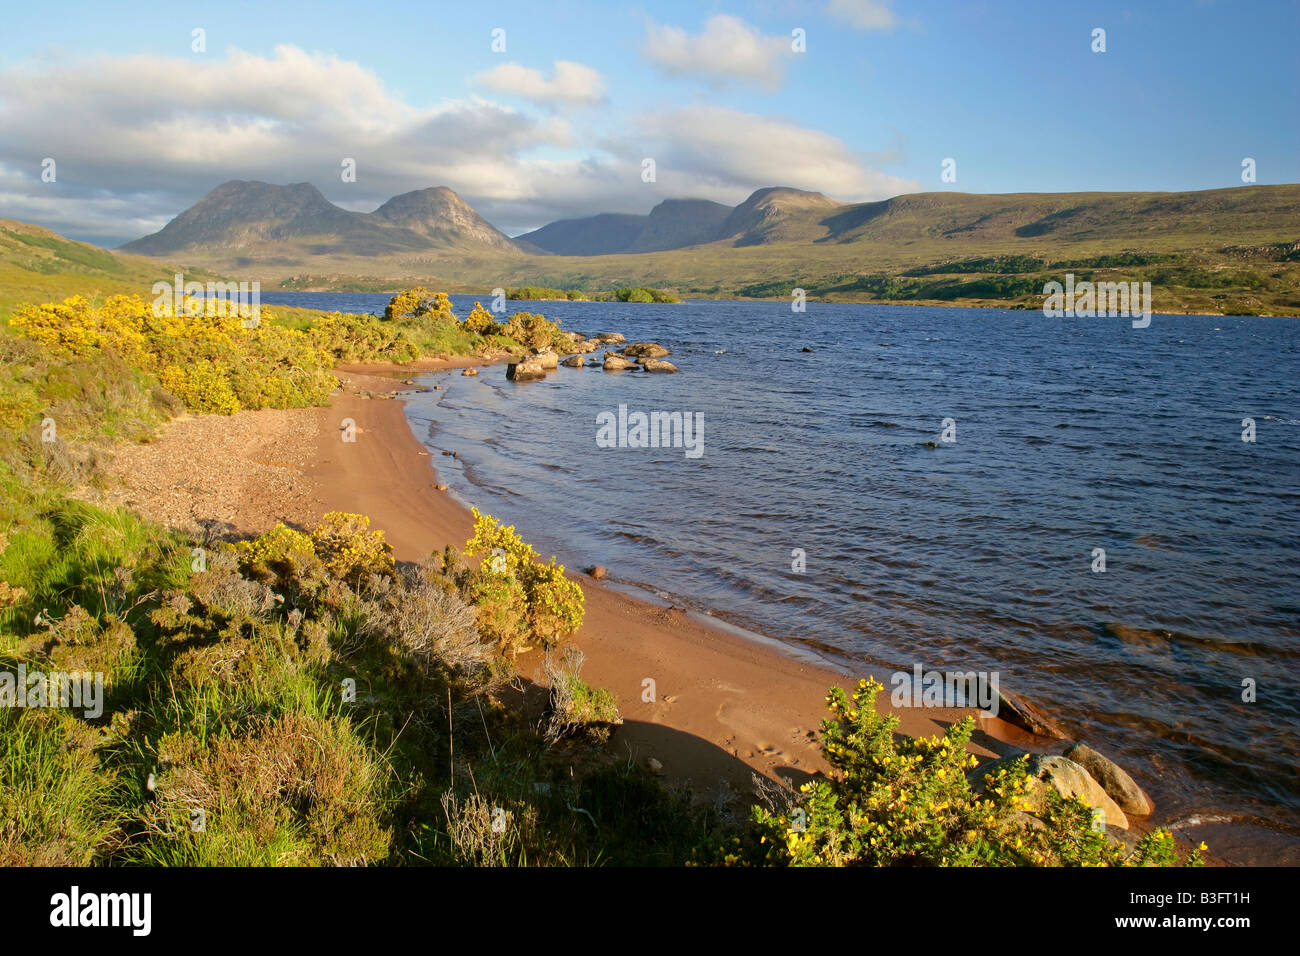 scenery view from the shores of Loch Lurgainn towards Cul Beag and Beinn an Eoin with blooming gorse near Inverpolly Stock Photo